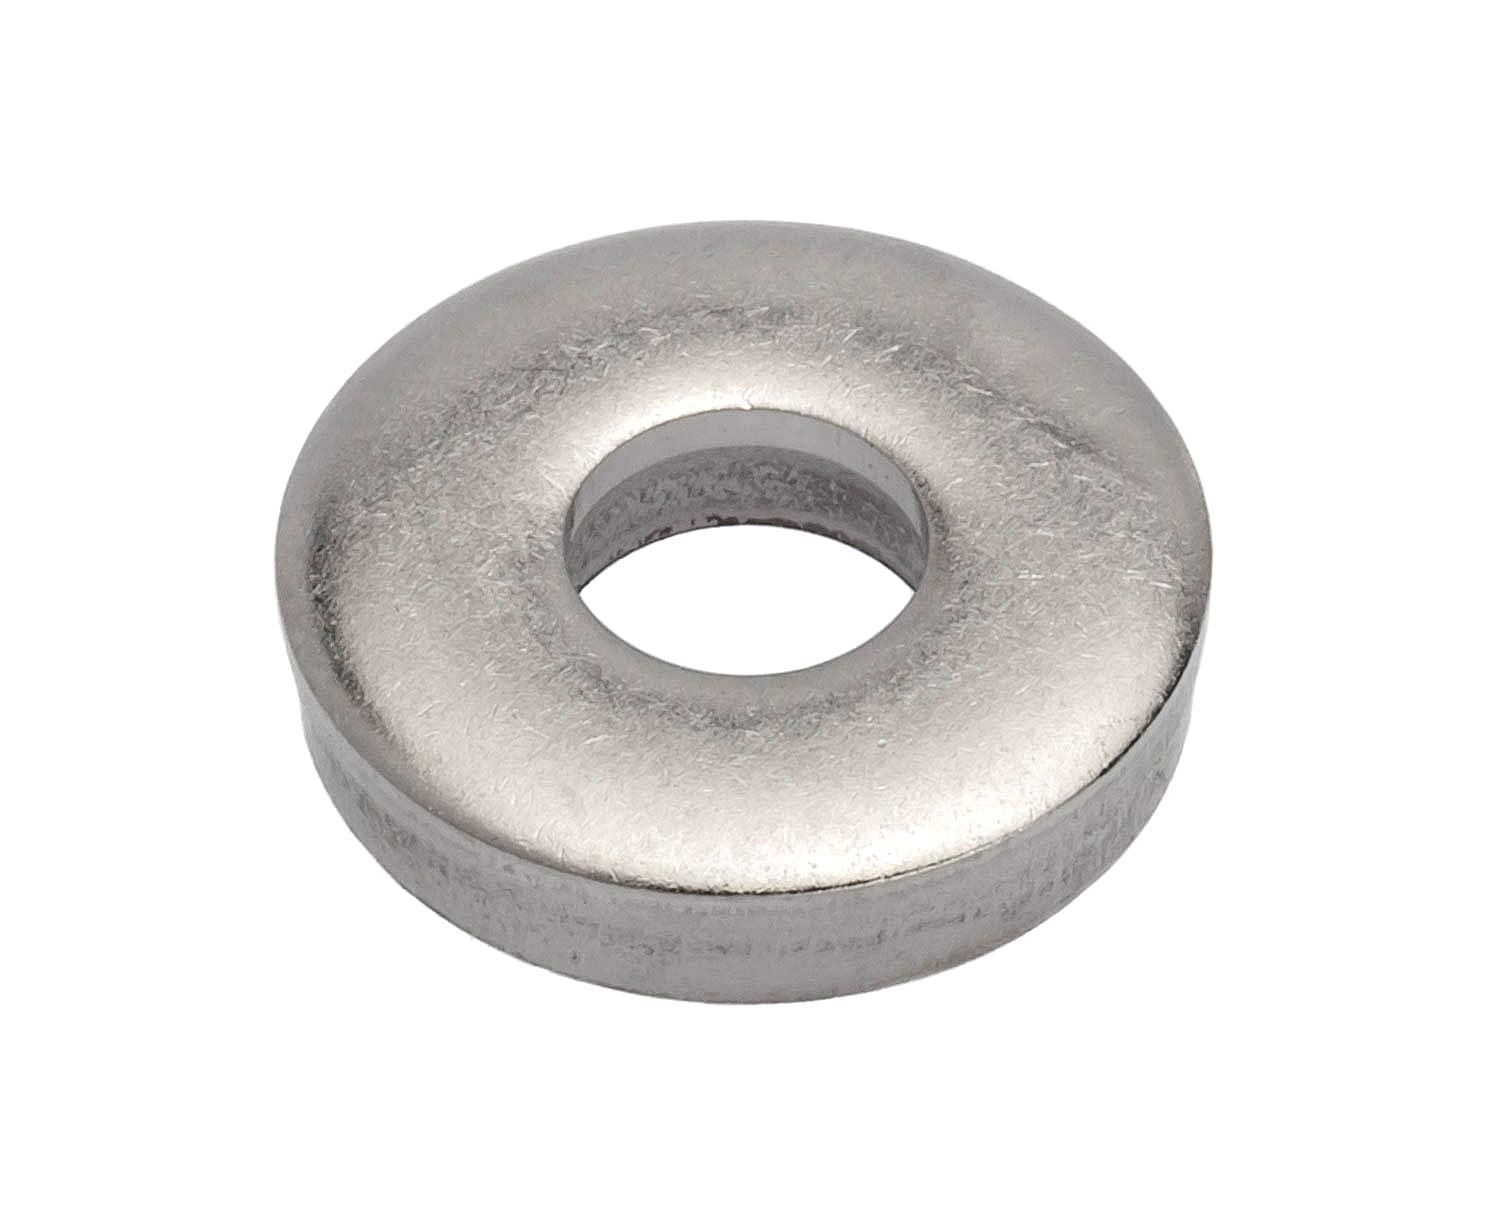 AMPG Z8870SS Metric Flat Washer, Stainless Steel